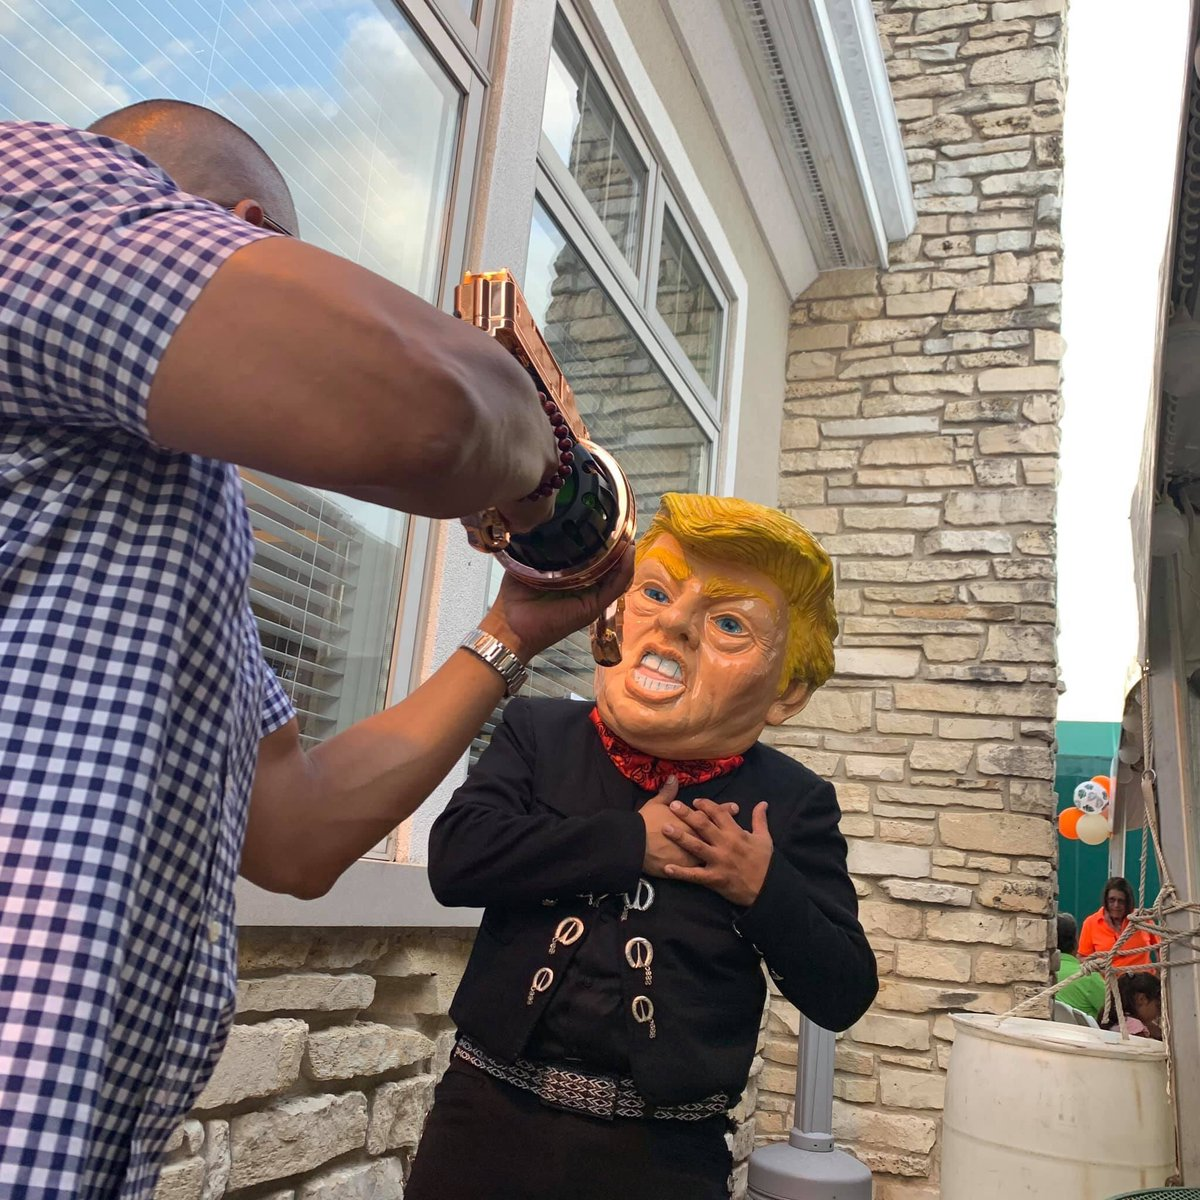 Shocking: A Democrat State Senator's fundraiser featured photo opportunities to point a fake rifle at someone dressed as @realDonaldTrump Every single Democrat running for president has been silent on this Do they all condone this encouragement of political violence? 🤔